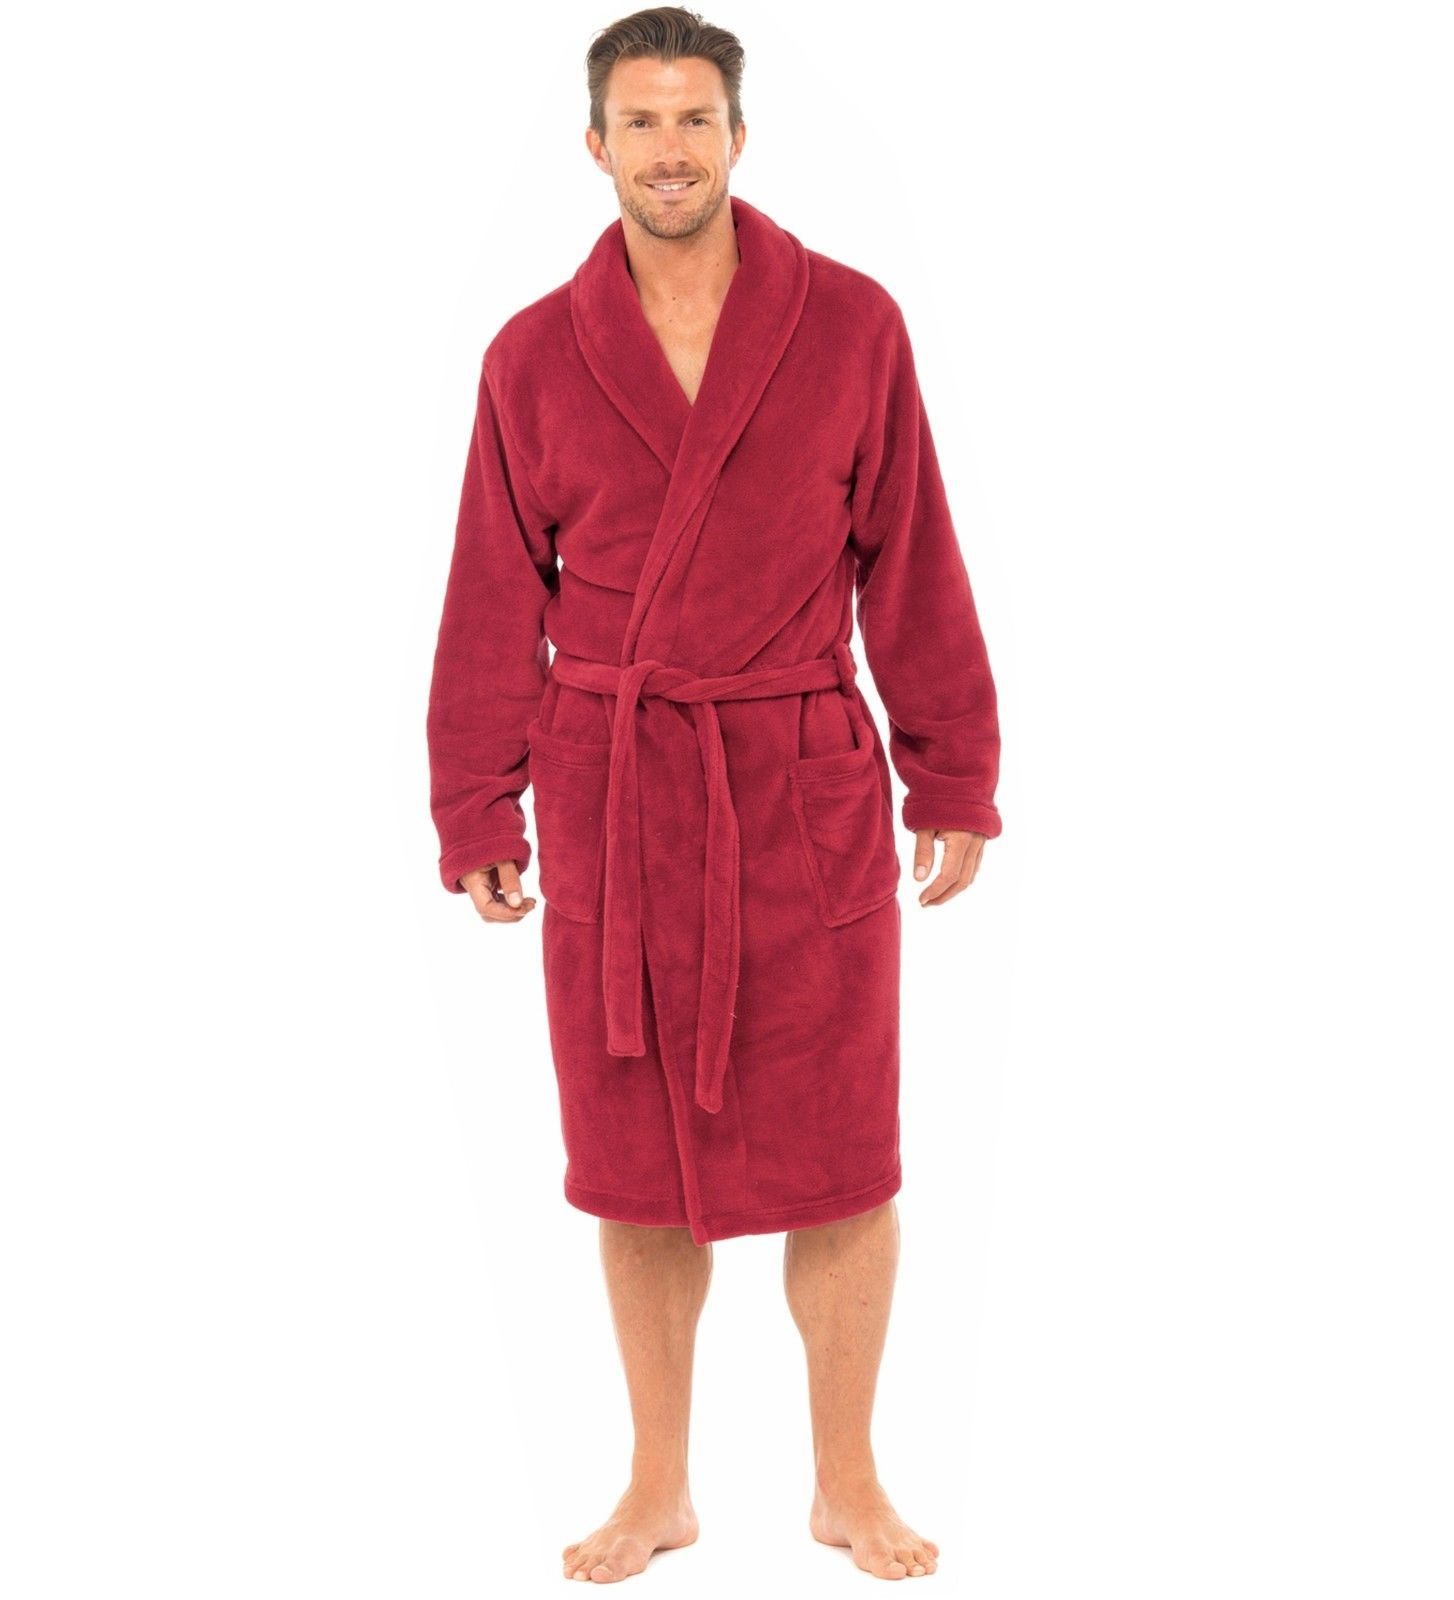 homme tom franks luxe plain corail polaire peignoir robe. Black Bedroom Furniture Sets. Home Design Ideas